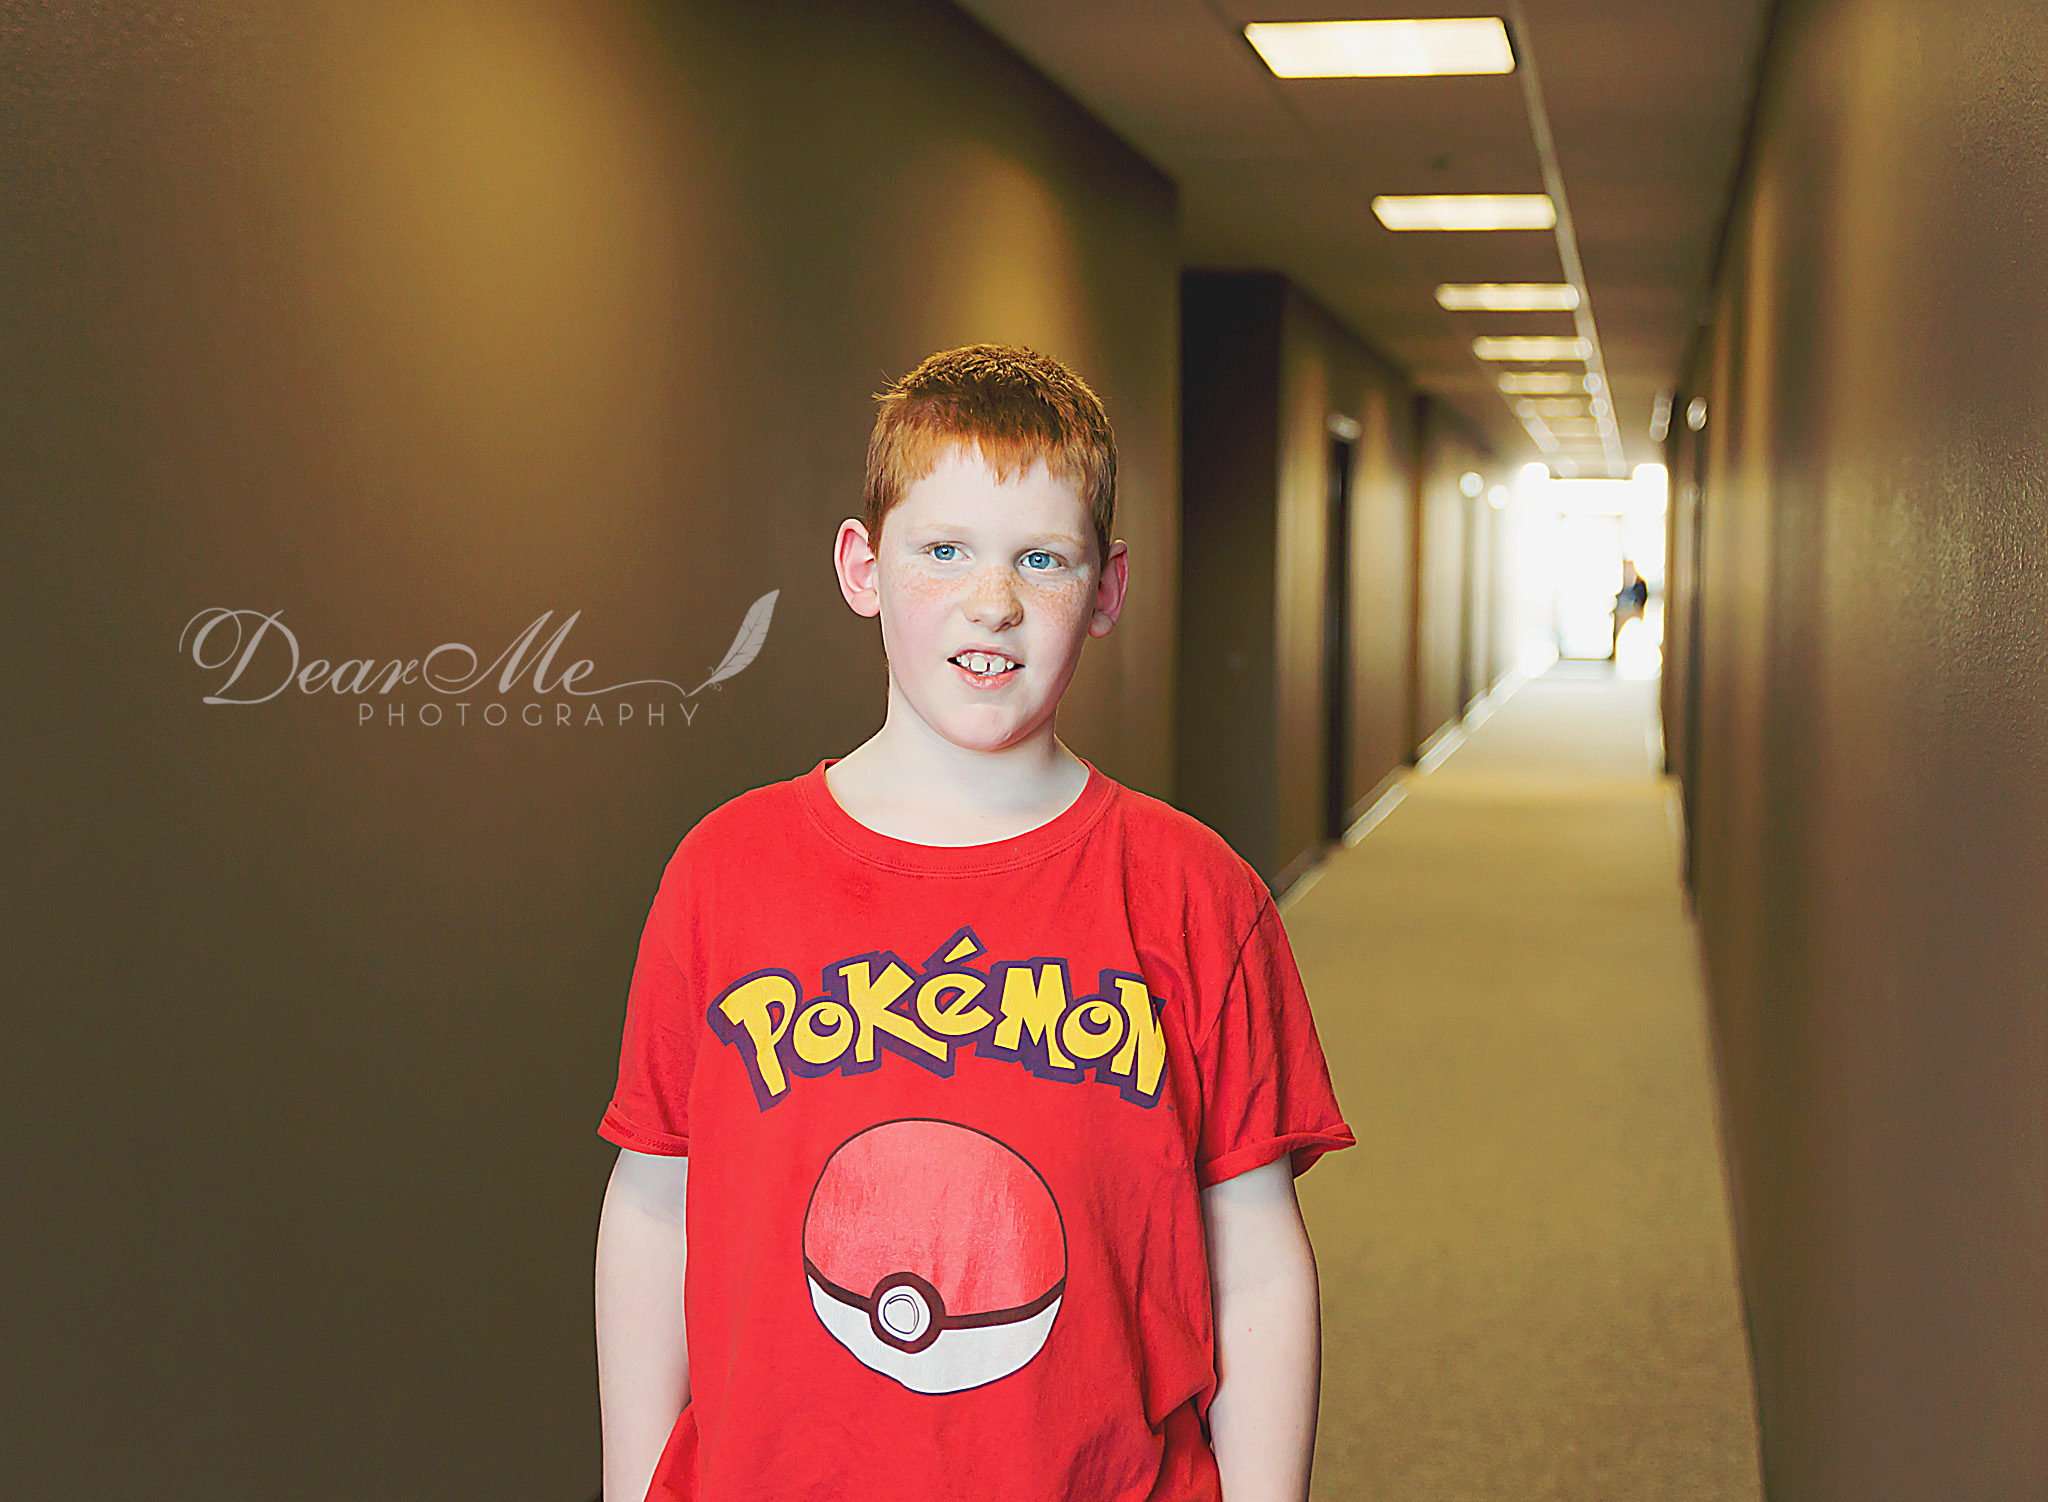 dear me photography bismarck photographer boy in red shirt standing in hallway